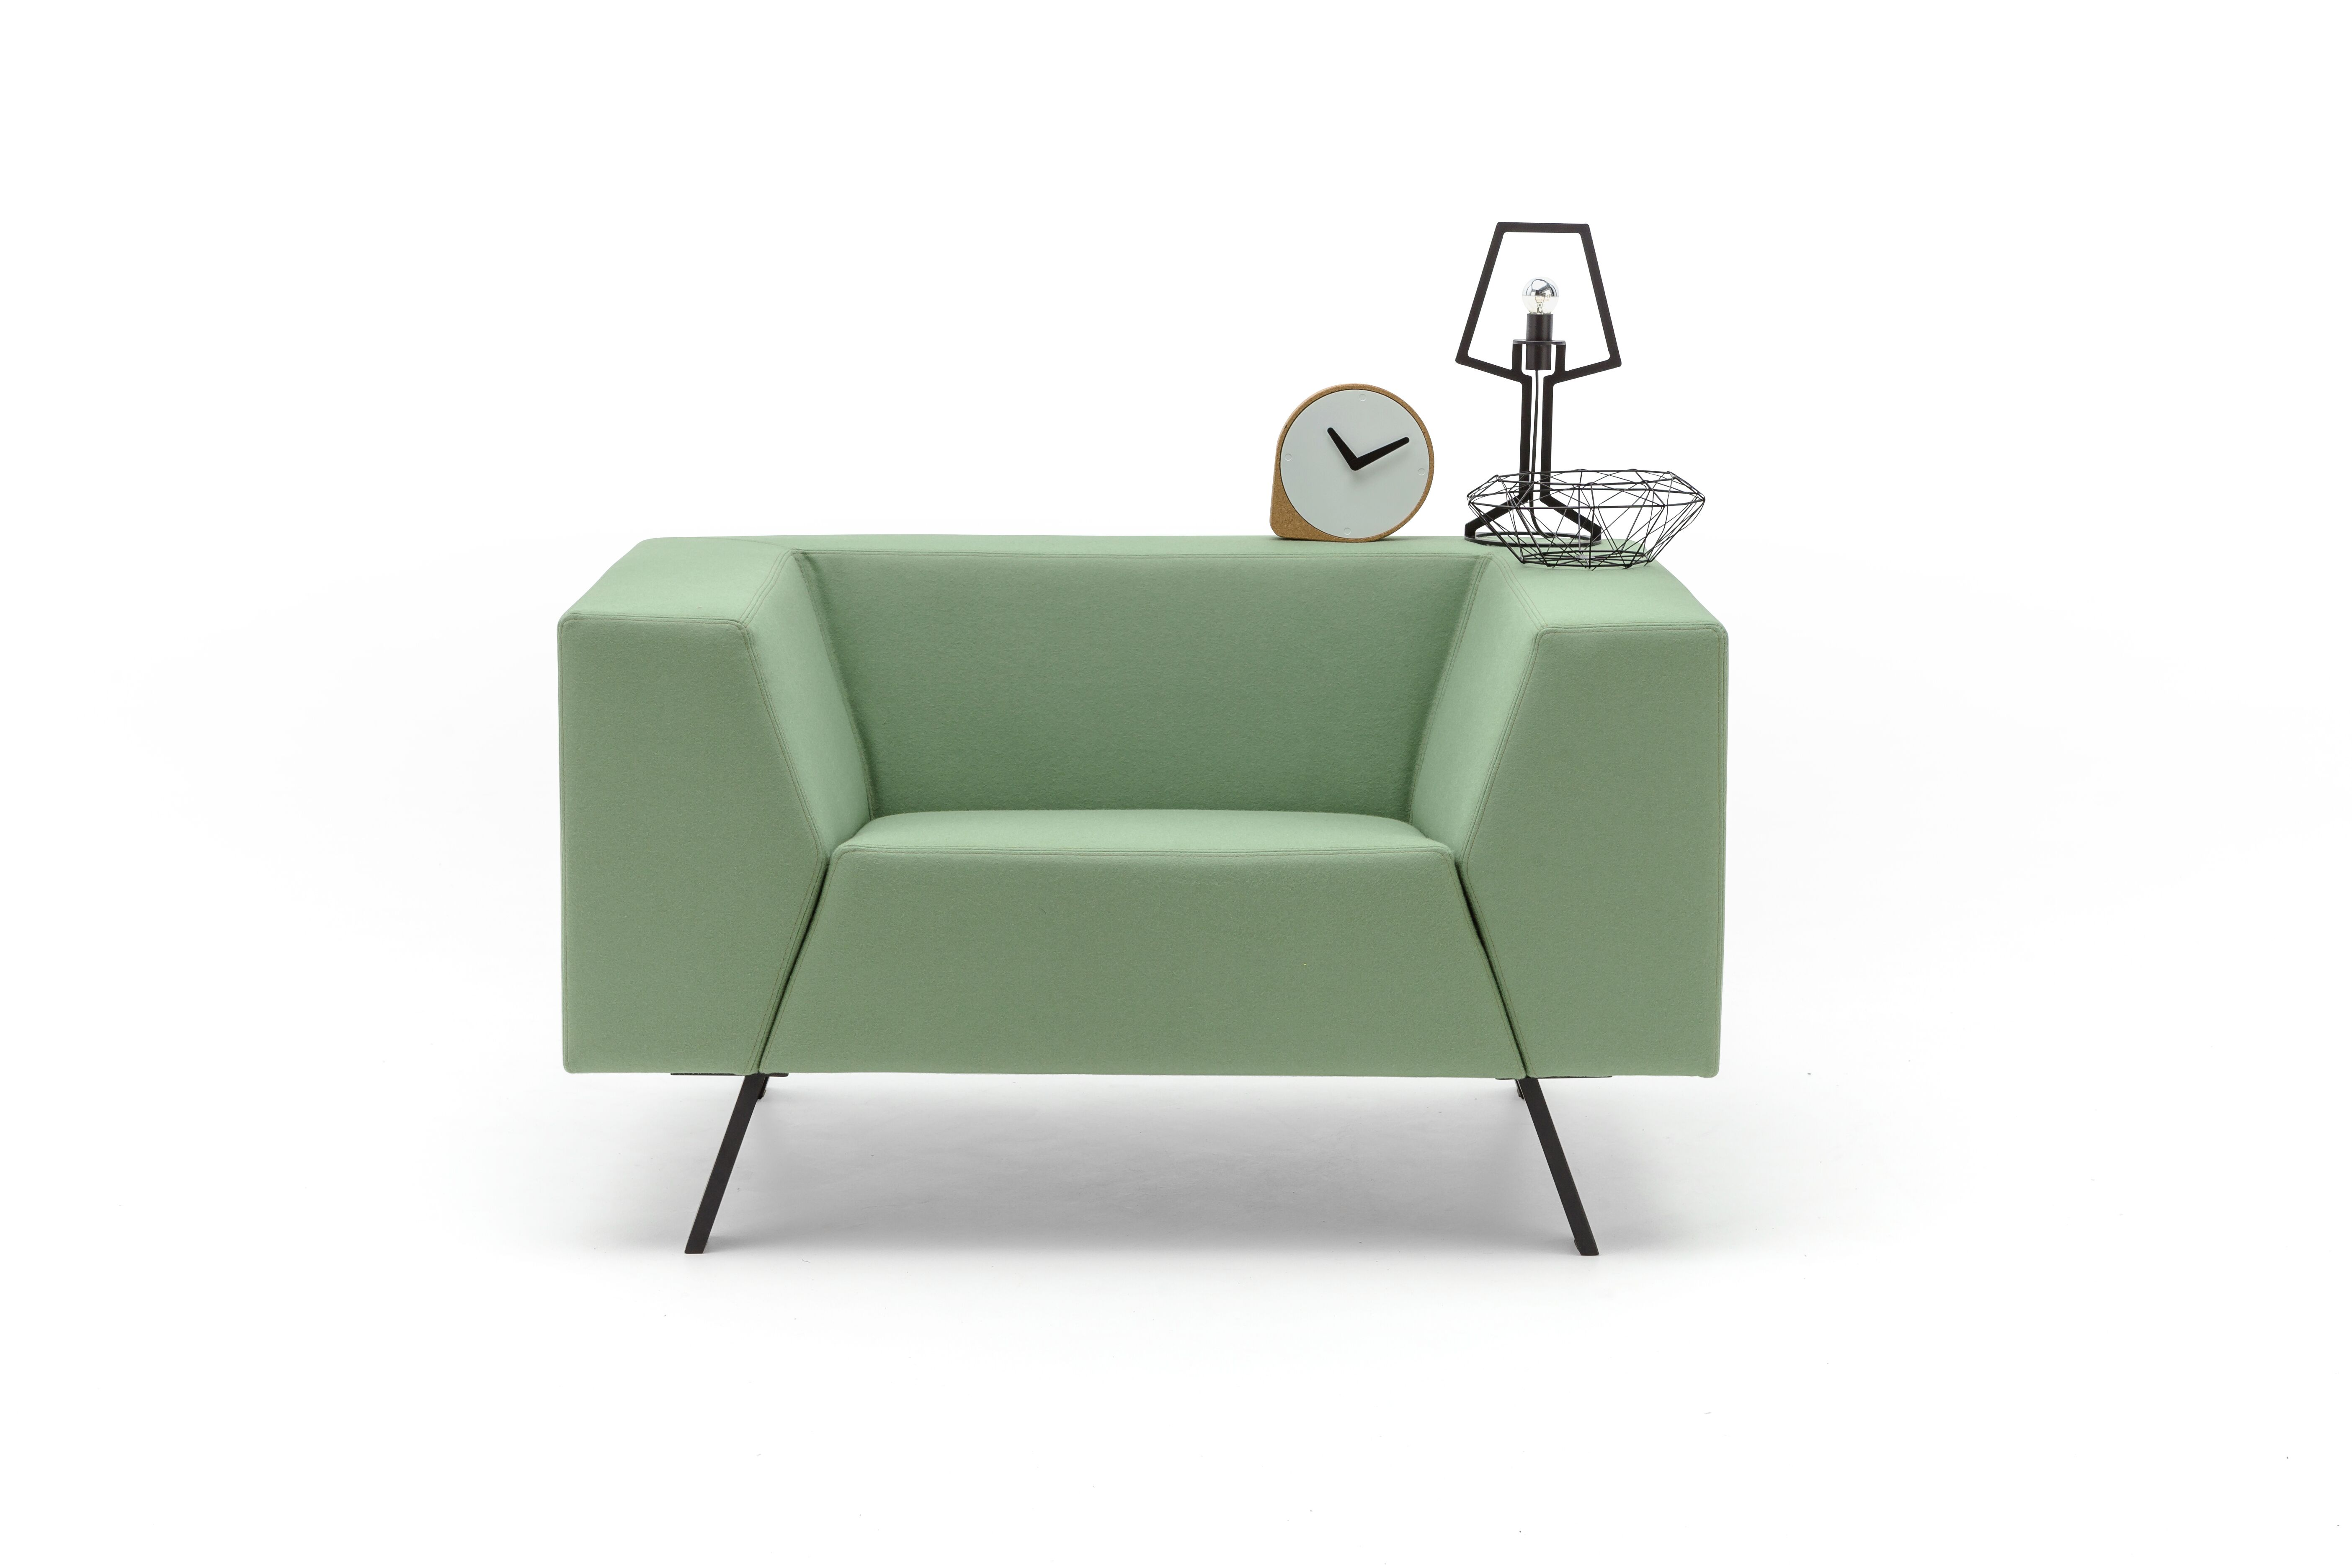 Gispen Sett low armchair in divina 856 green and Outline table lamp front view